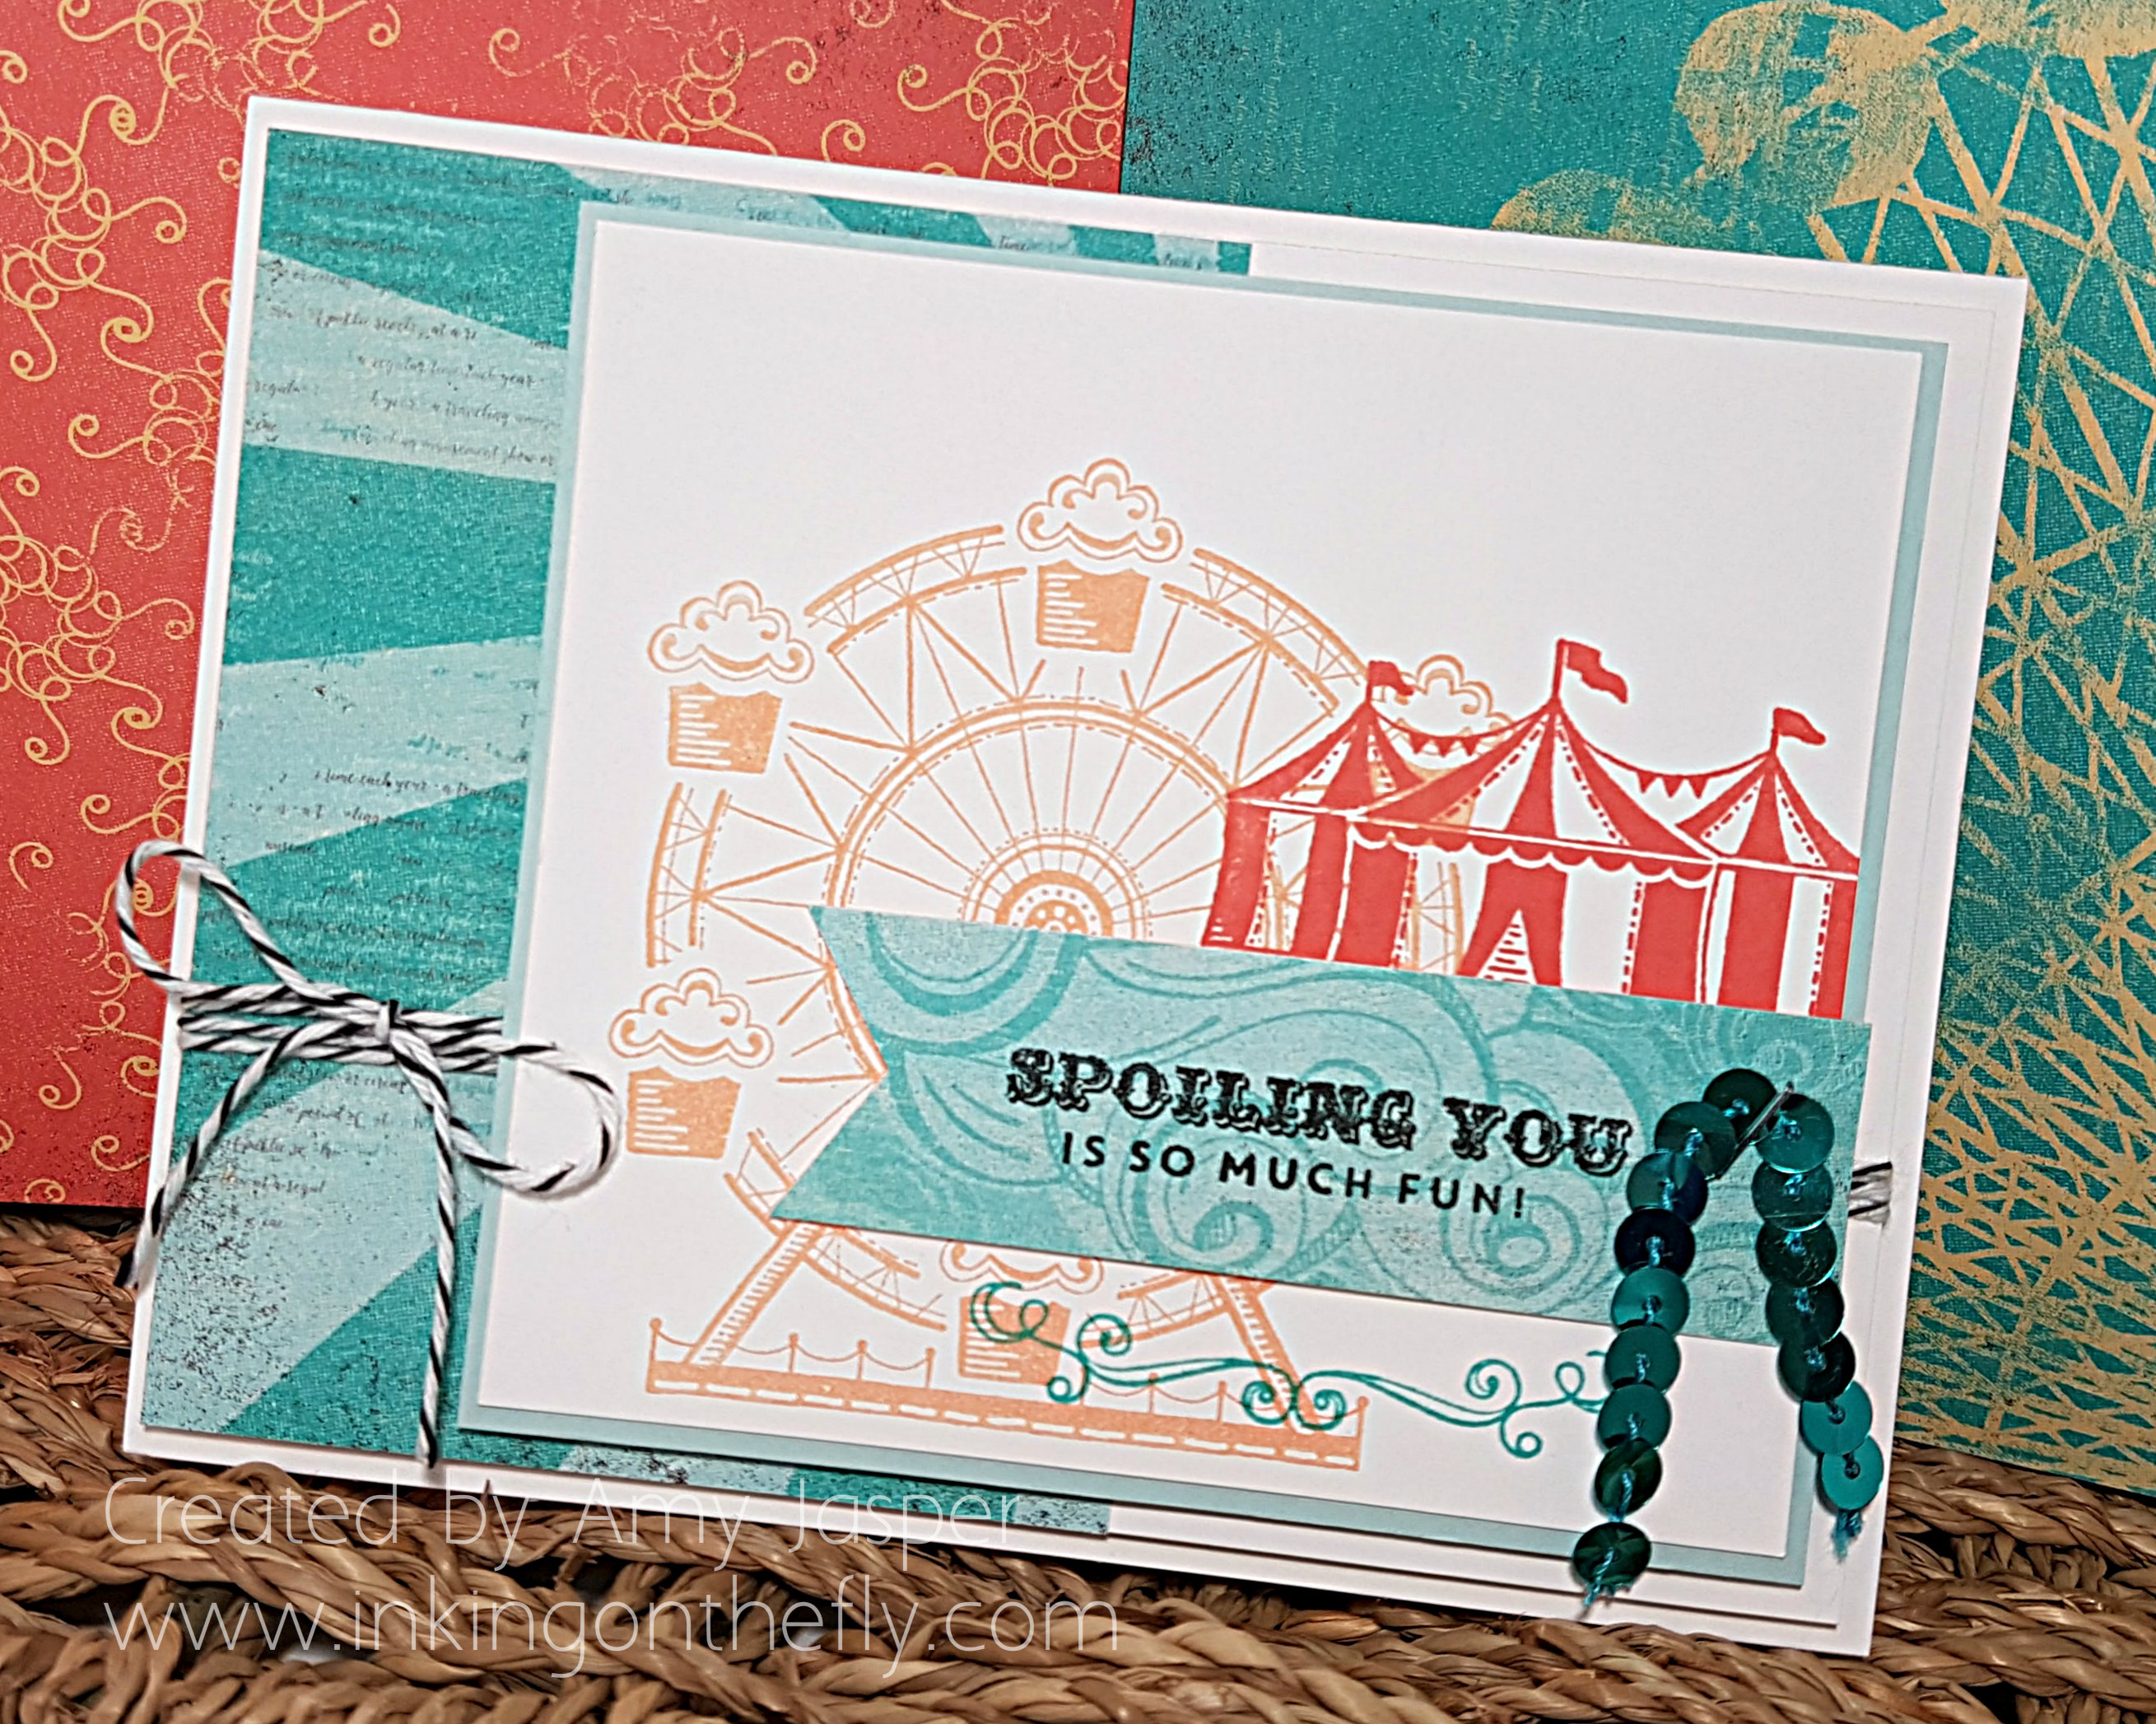 www.inkingonthefly.com Carousel Birthday by Amy Jasper - CASEd from Kristin McNickle's beautiful note card design.